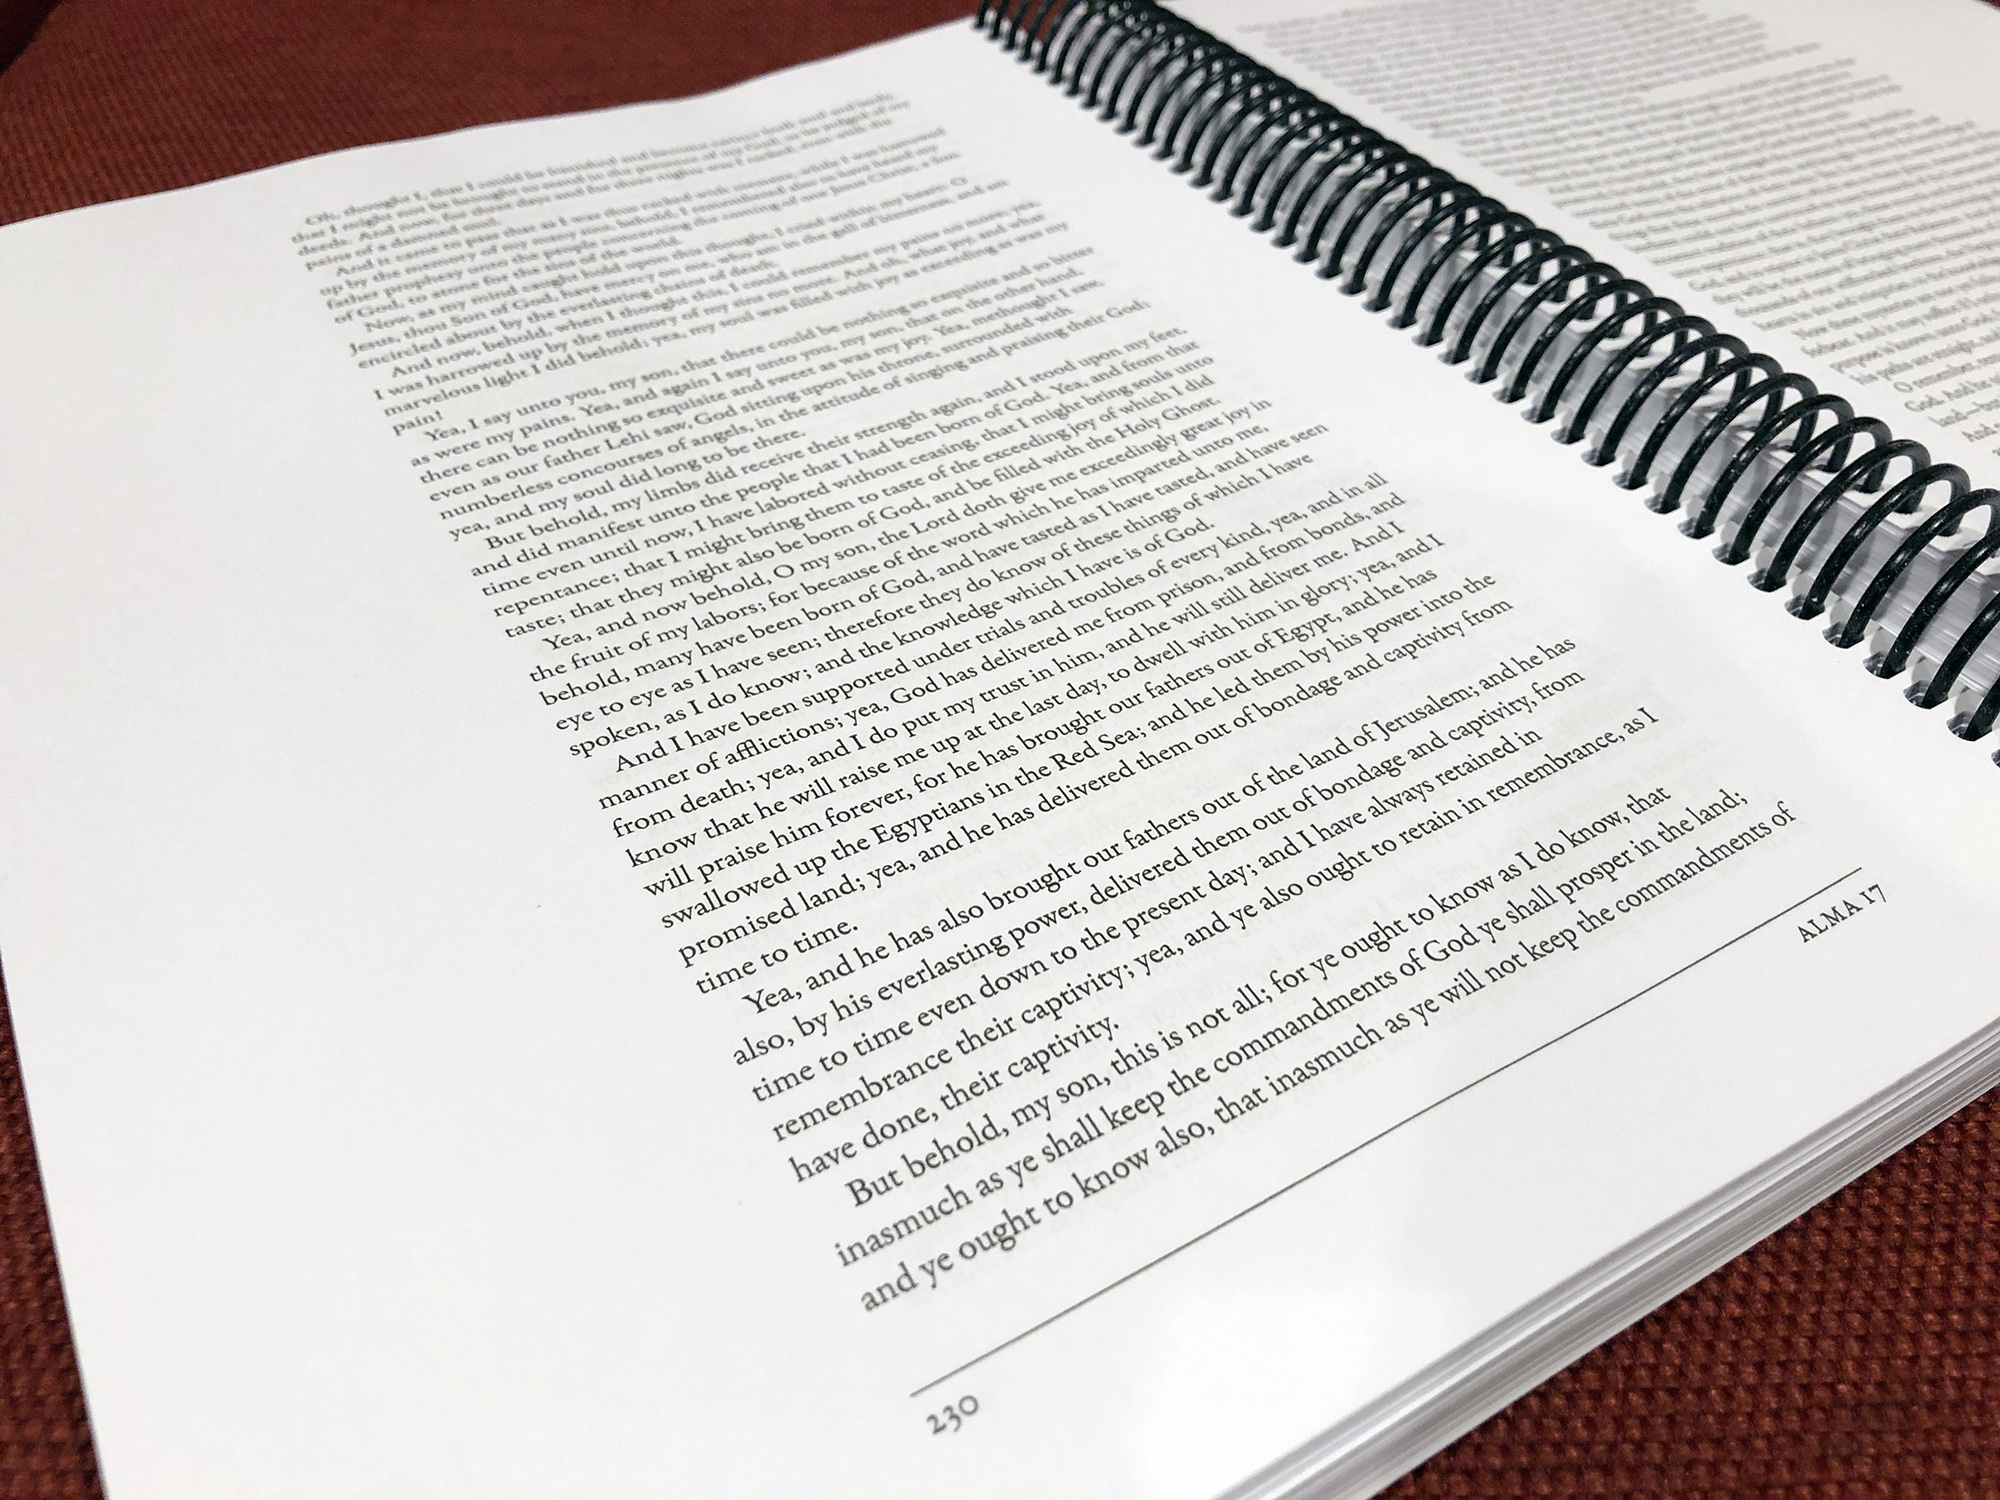 projects/readers-edition/readers-edition-eng-bofm-study-style-page.jpg?v1